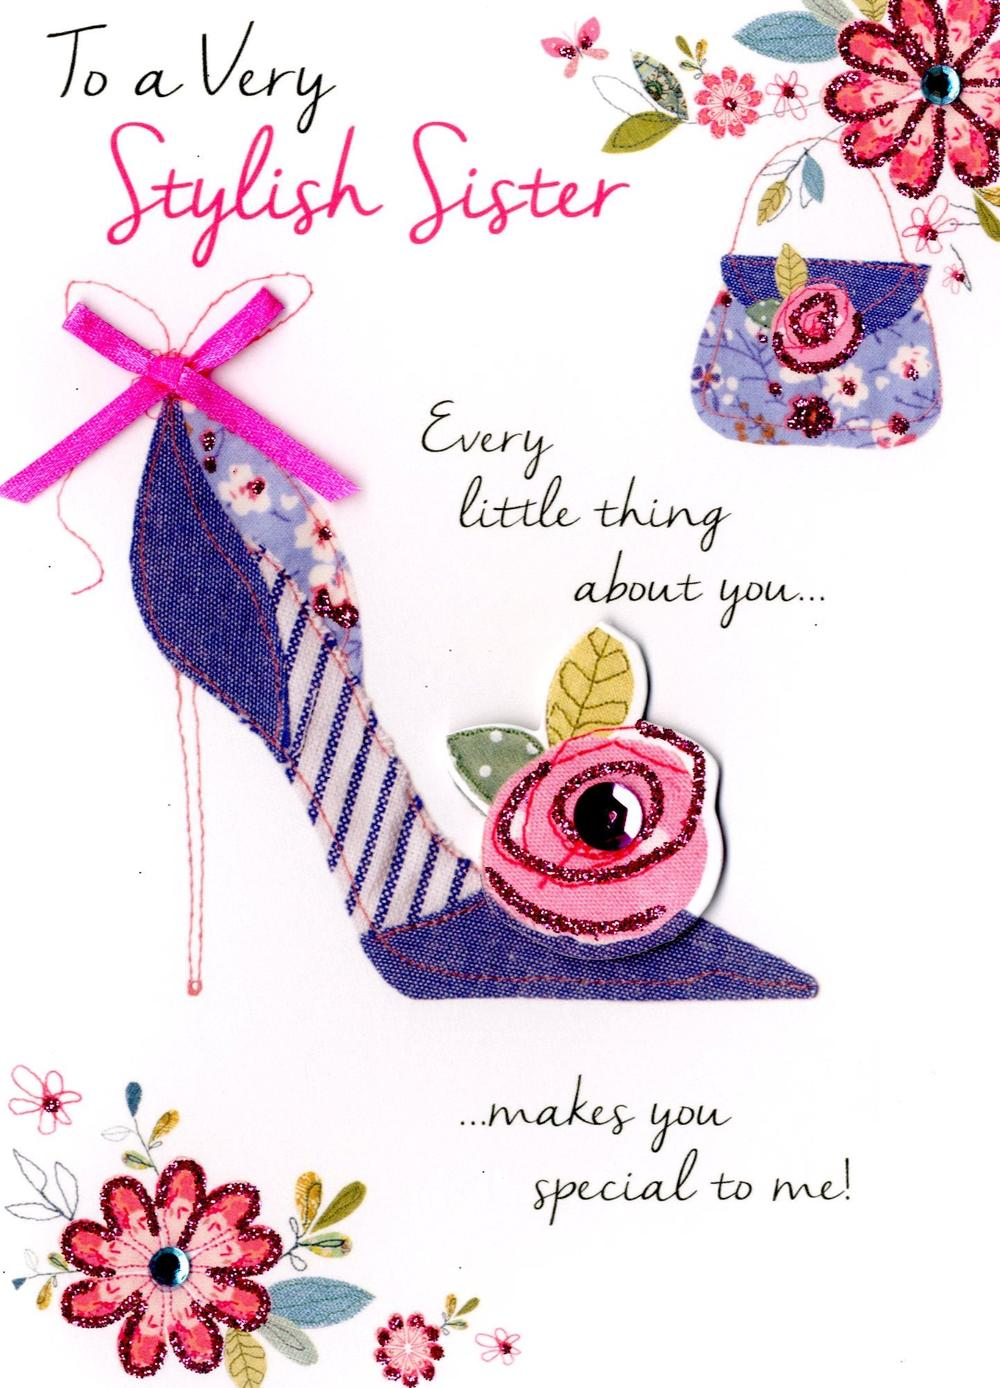 Very Stylish Sister Birthday Greeting Card